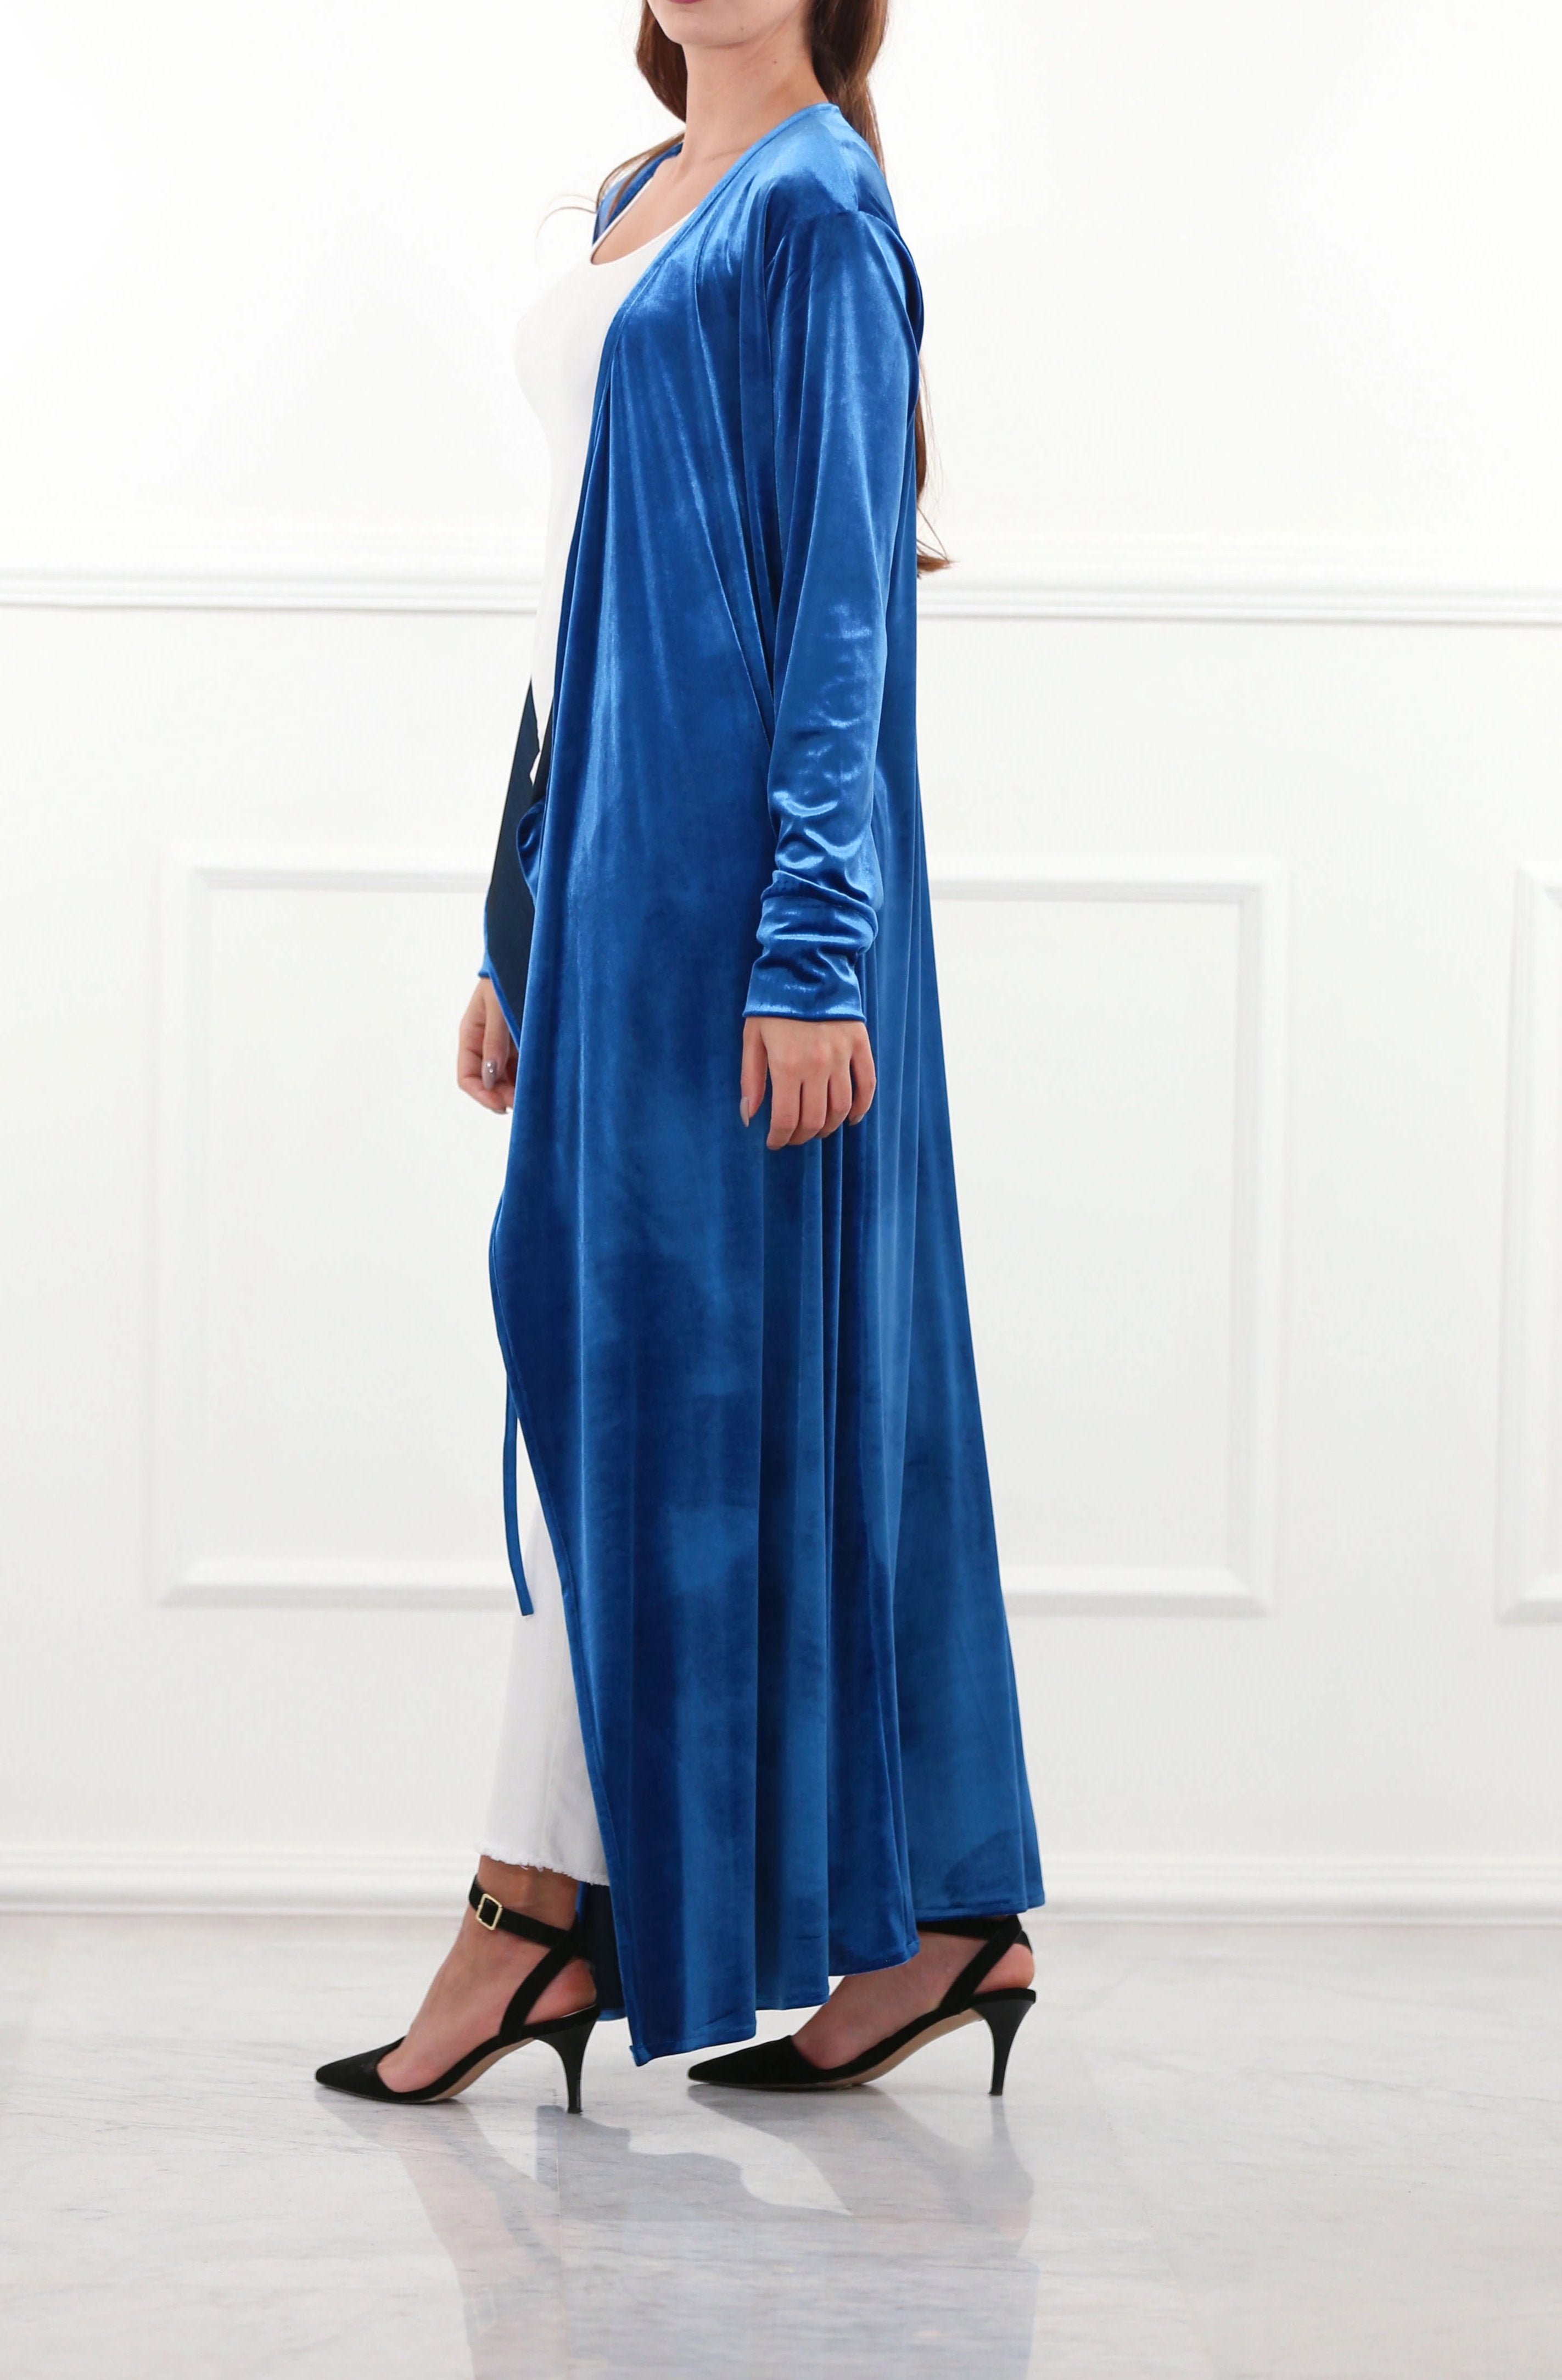 dded35e19cc Regal Blue Velour Robe Dress – RUSH   REEZ